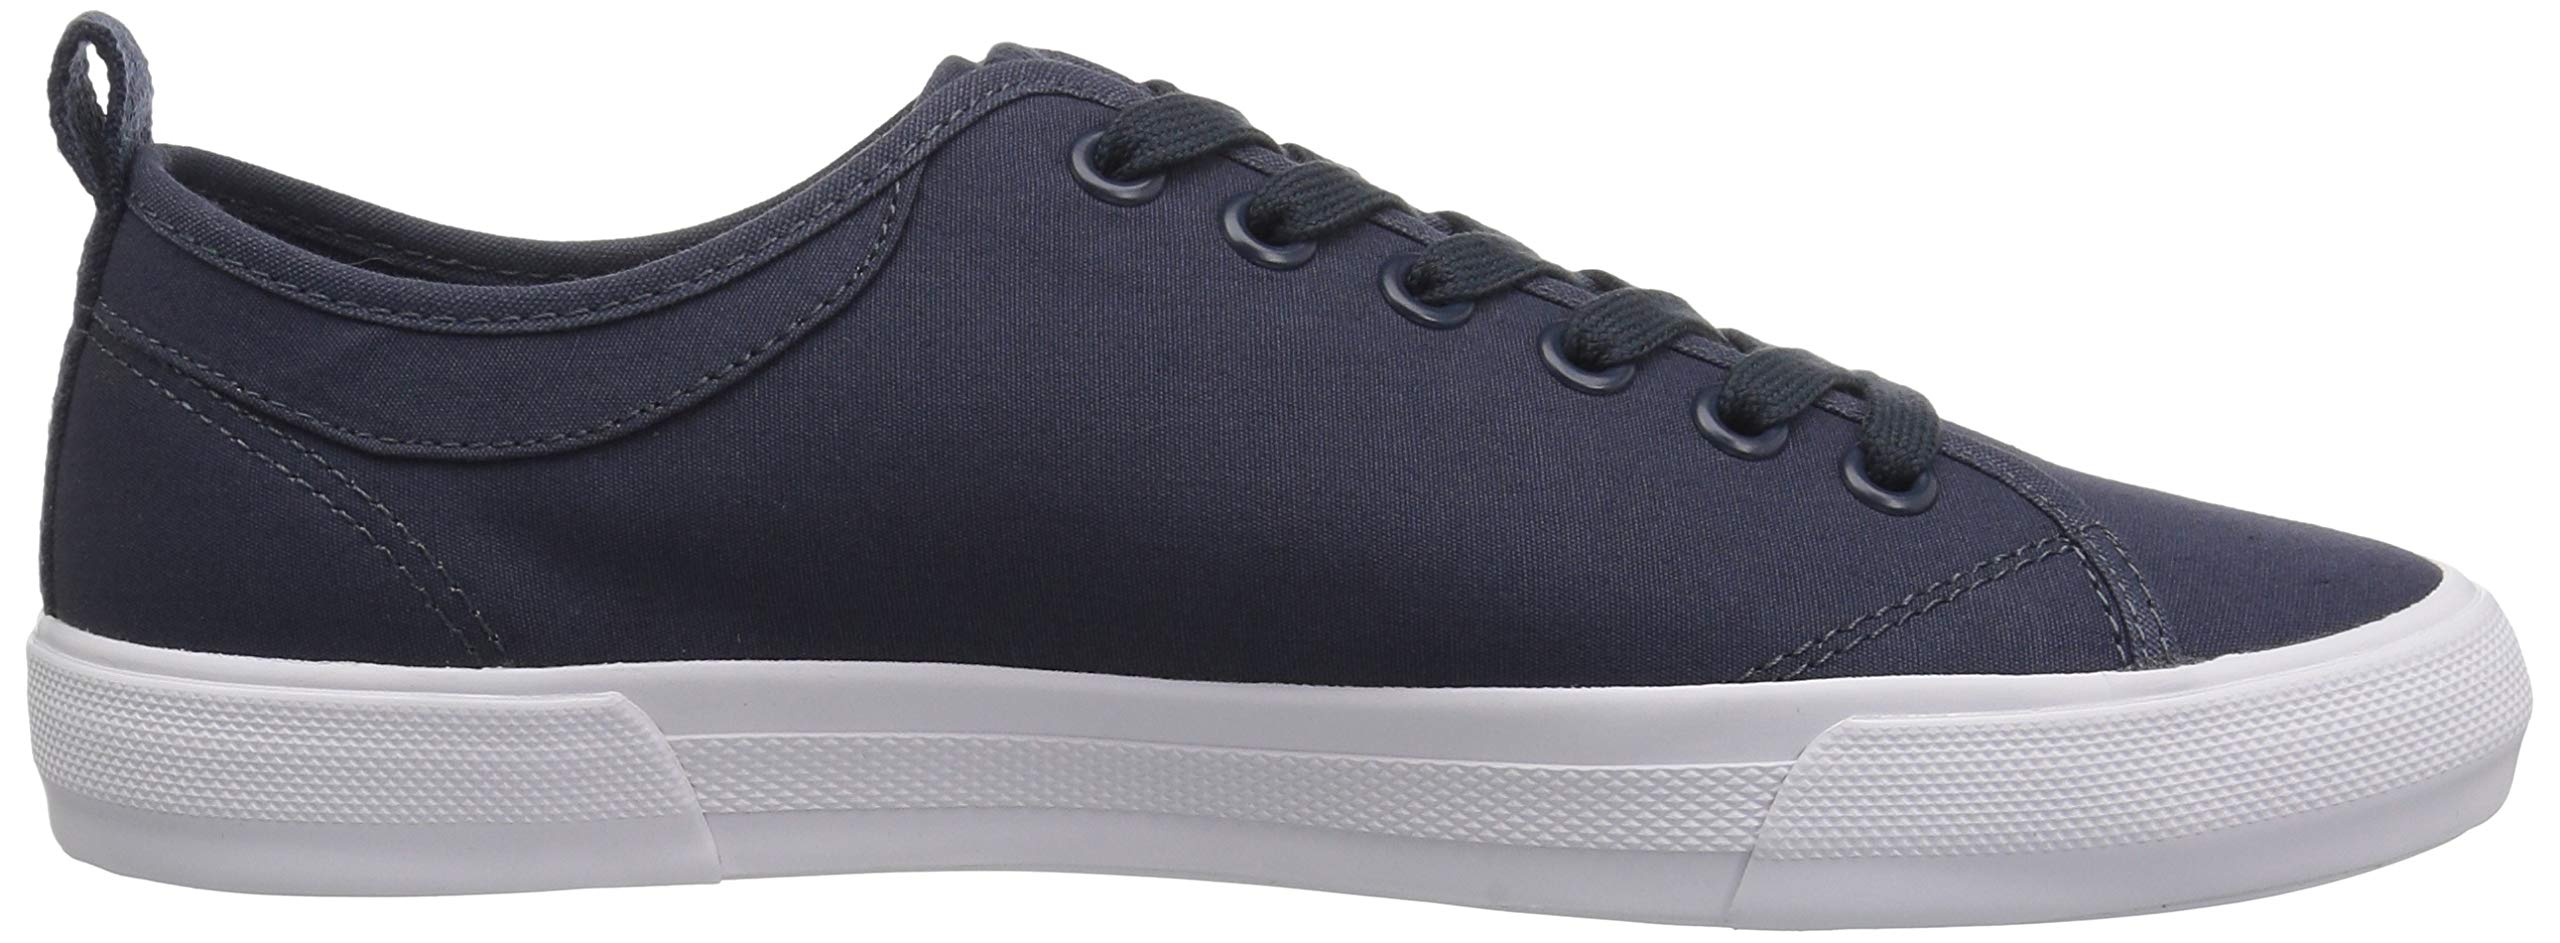 Fred Perry Men's Horton Shower Resist FINE CNV Sneaker, Dark air Force, 6 D UK (7 US) by Fred Perry (Image #6)